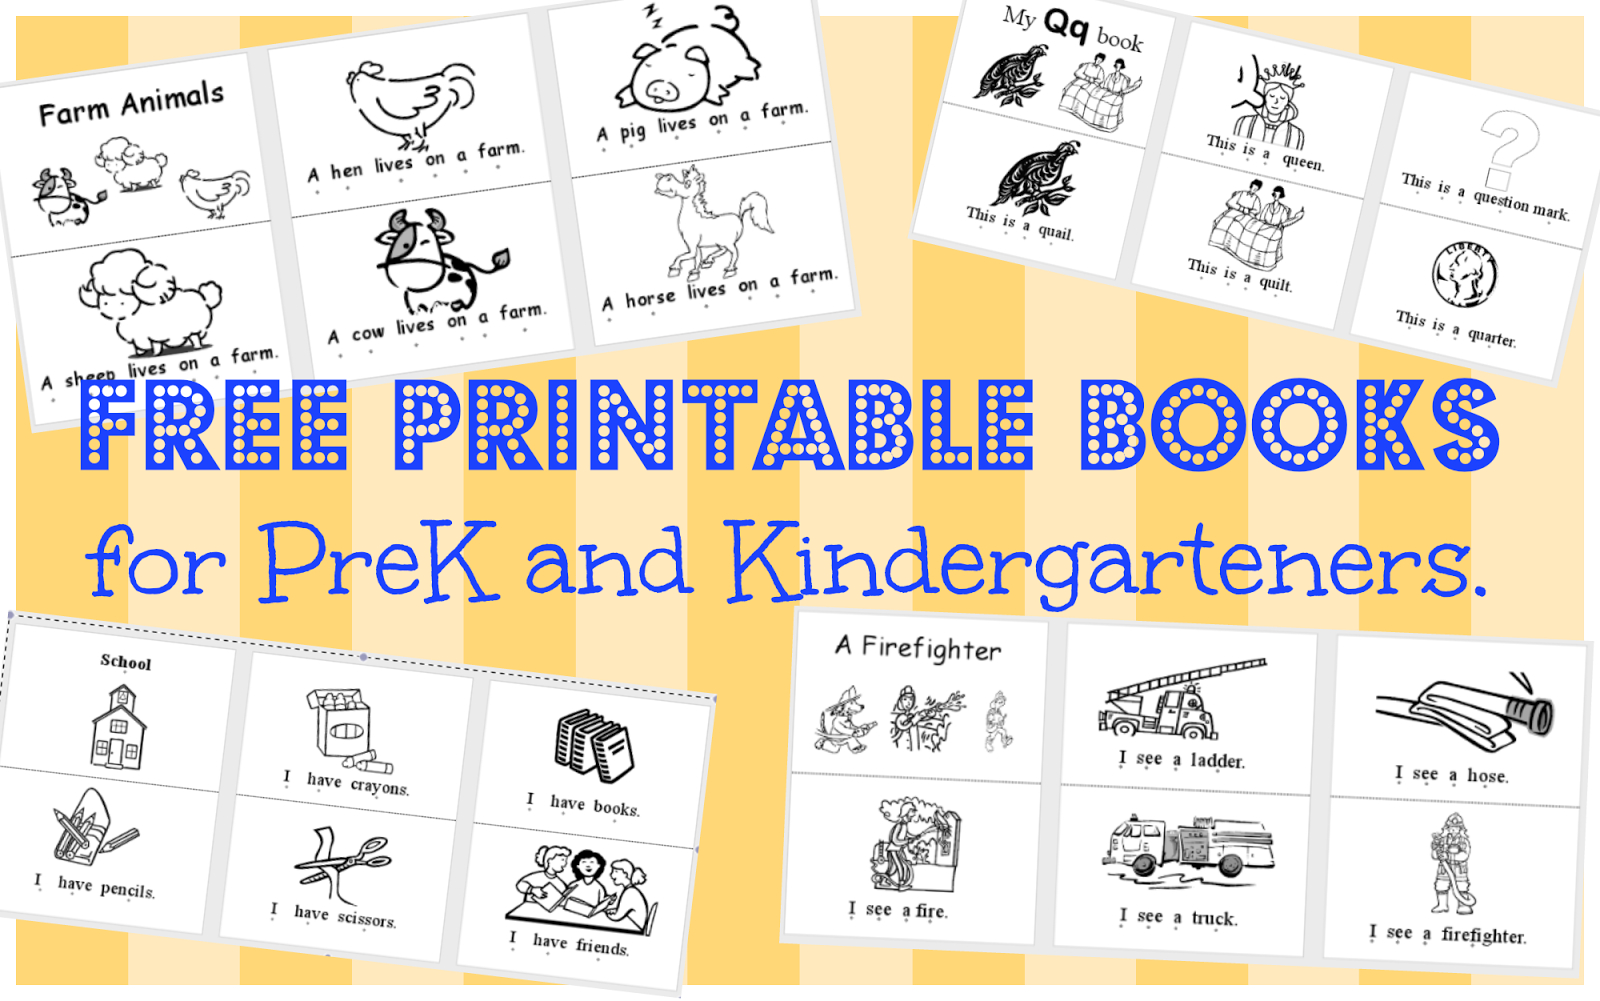 Printable Preschool Books Reading Free Printables Worksheet 1600 - Free Printable Reading Books For Preschool